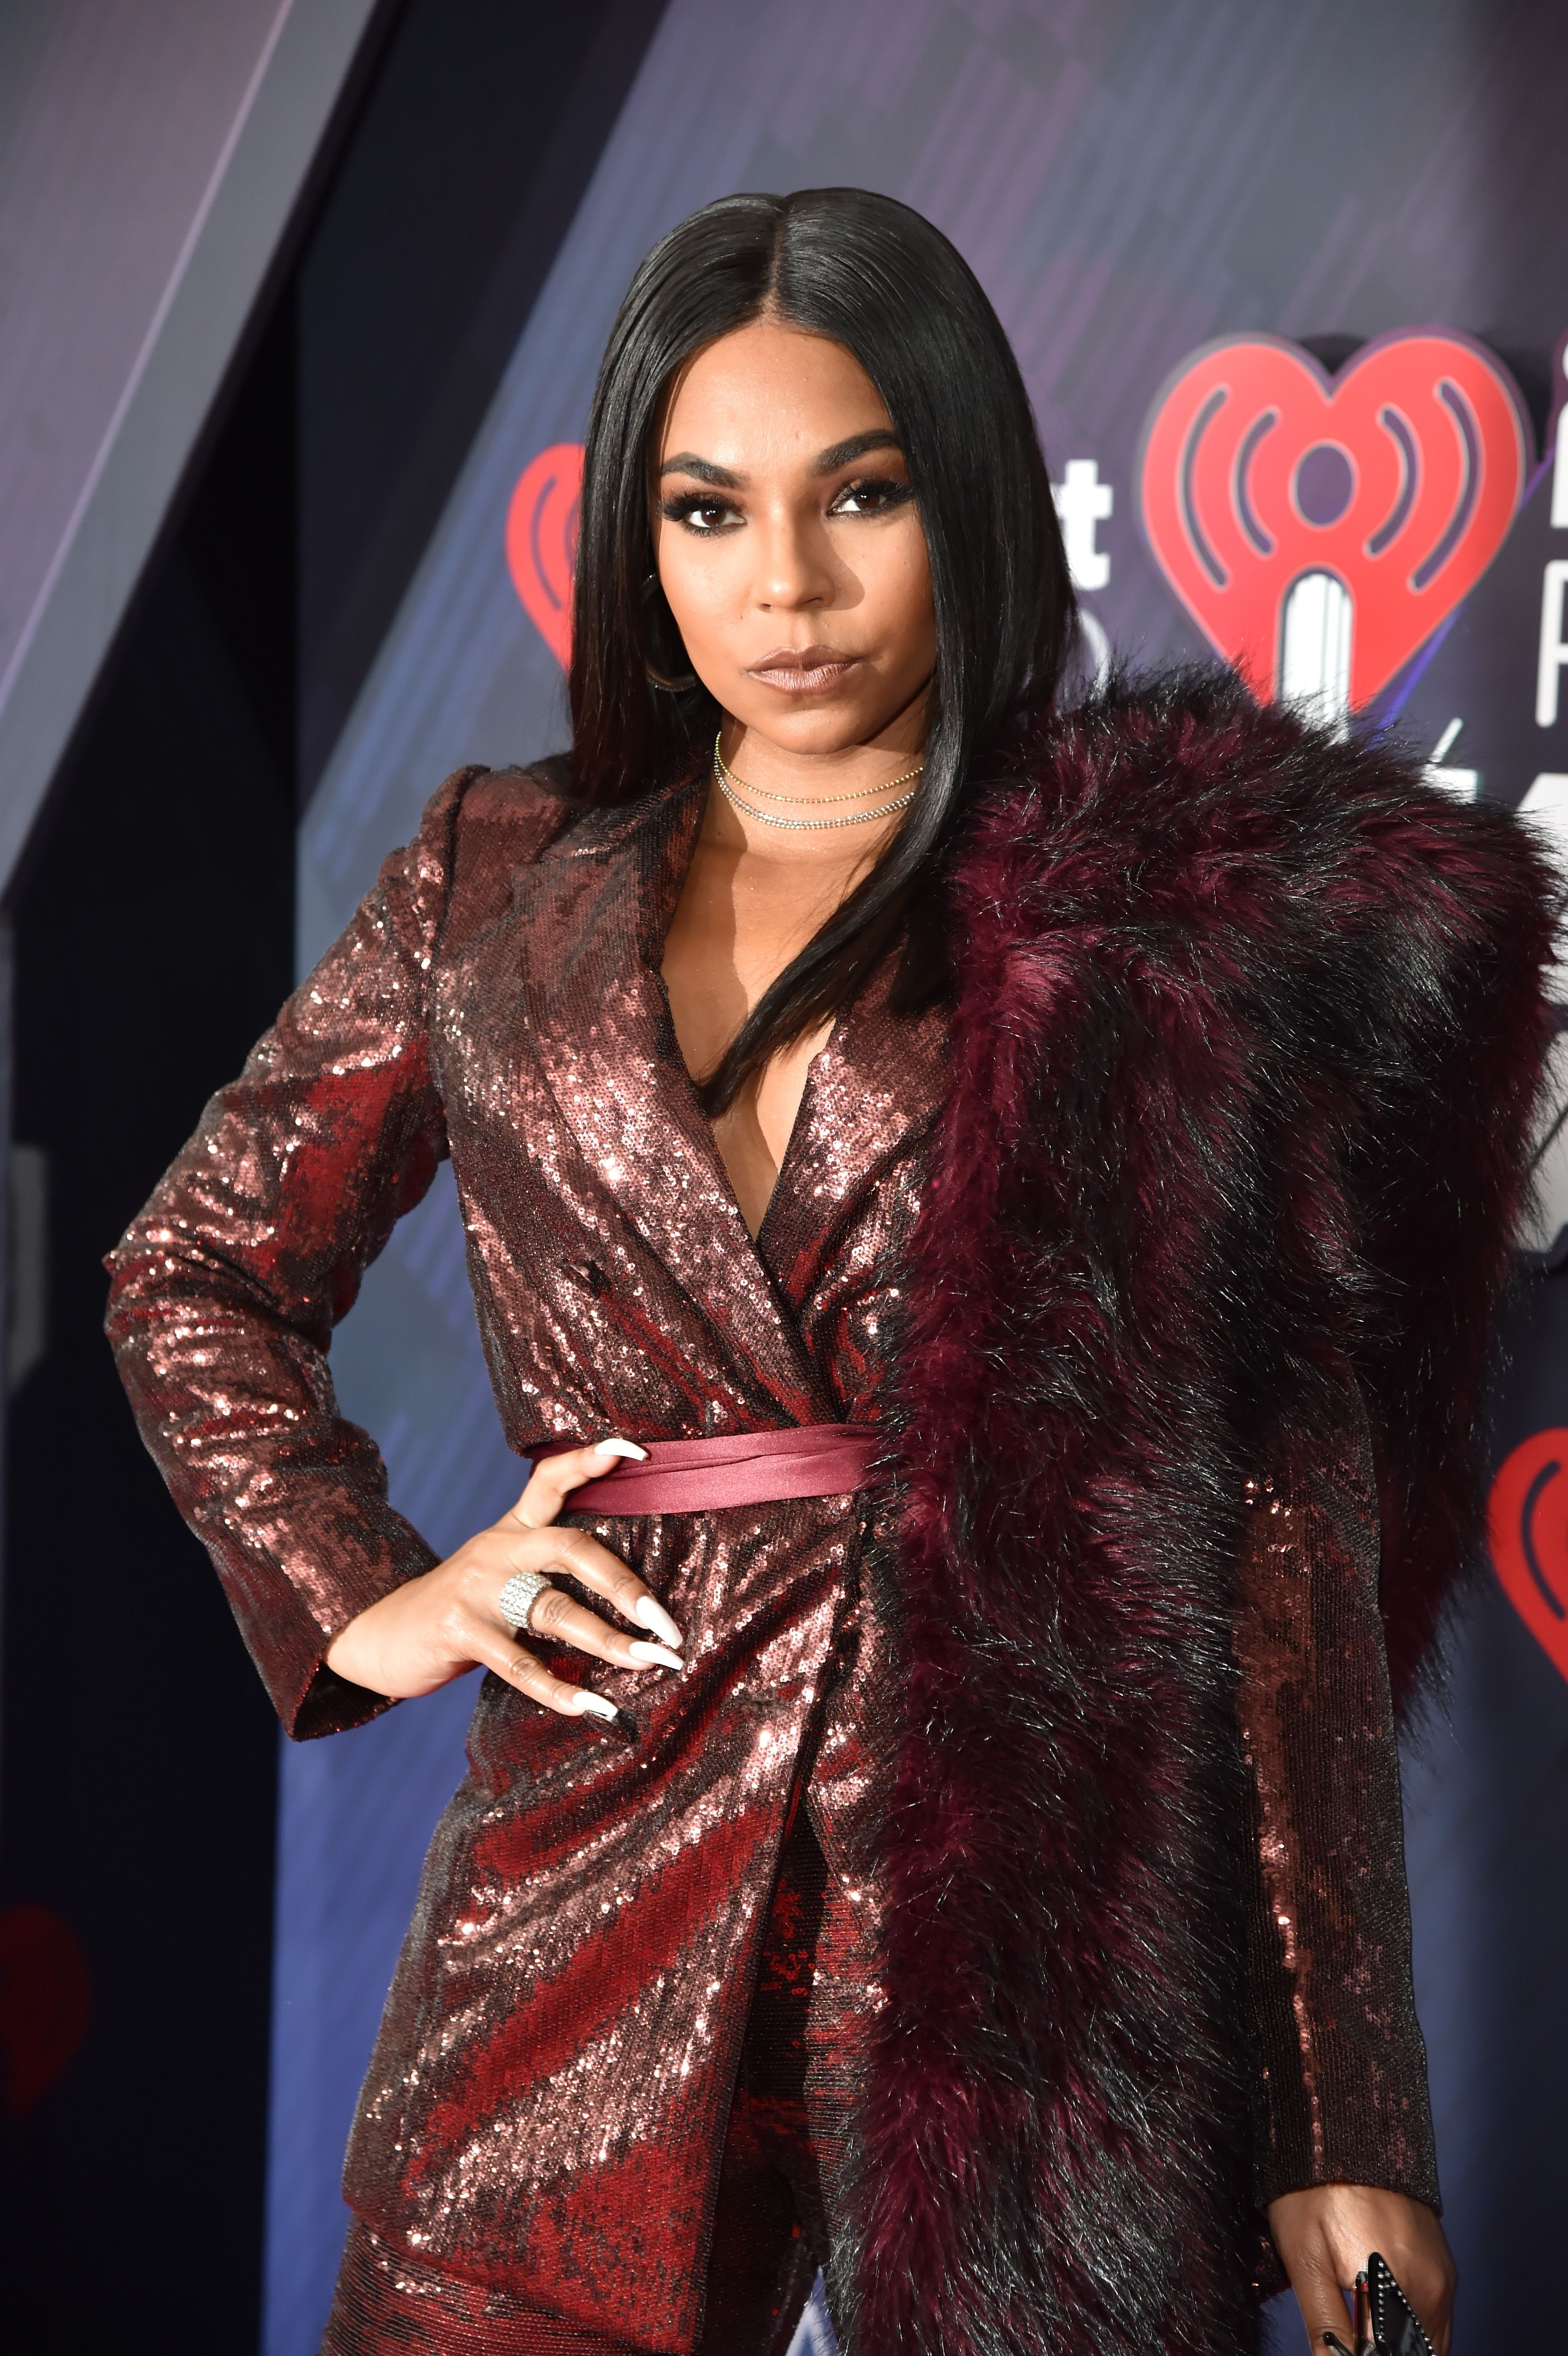 Ashanti at the 2018 iHeartRadio Music Awards in Inglewood, California   Source: Getty Images